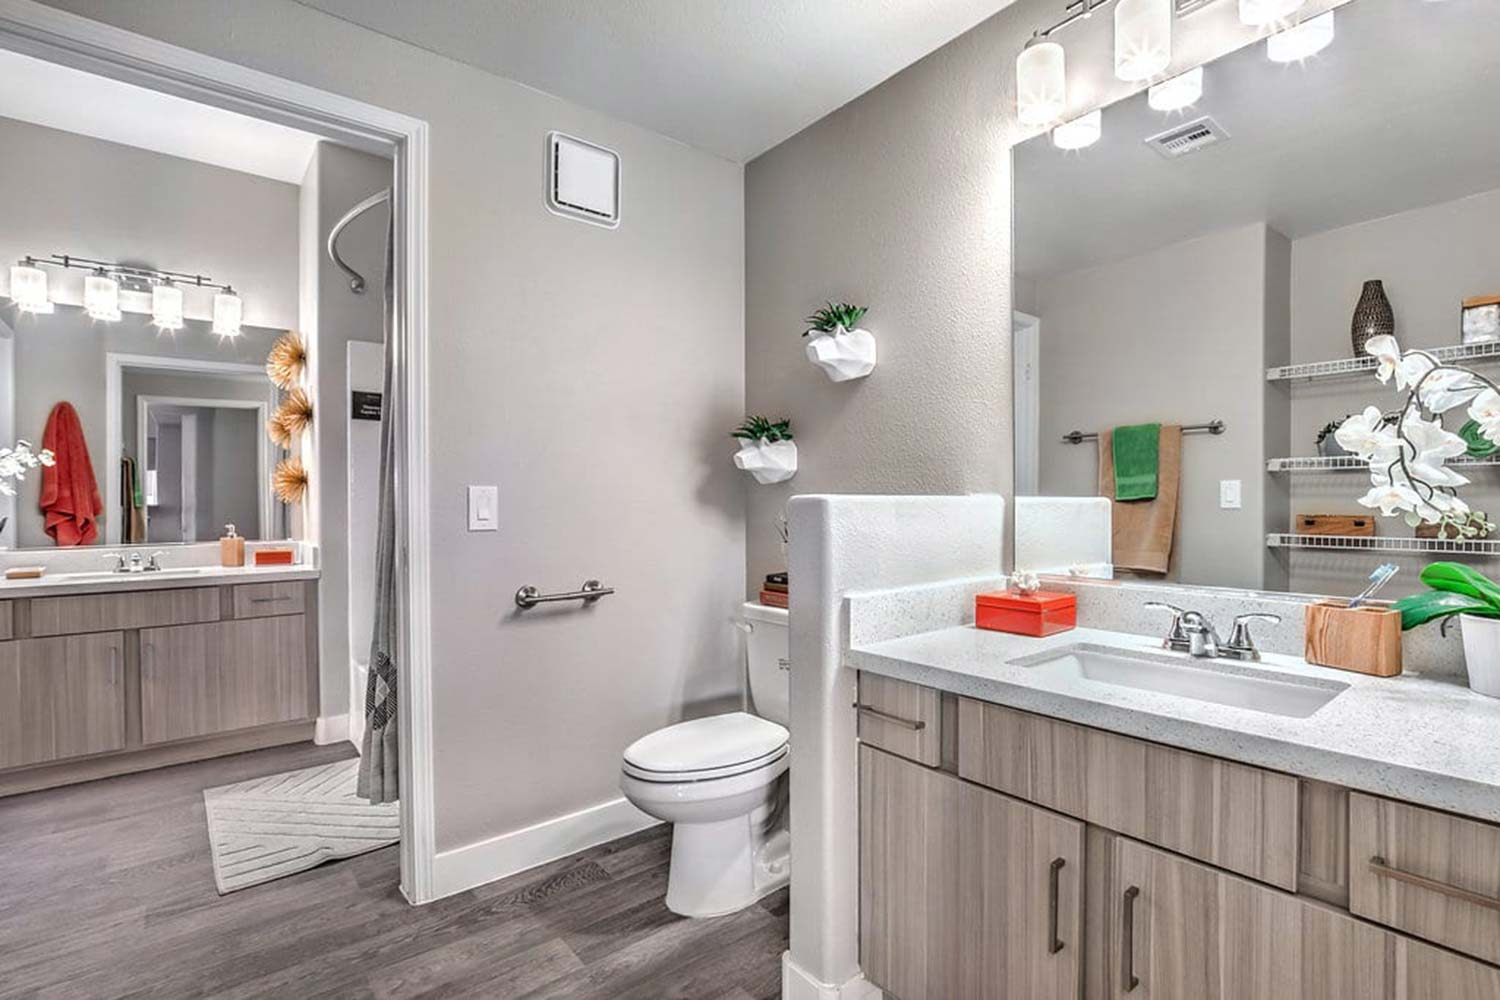 A bathroom with rich wood cabinets, smooth countertops, and planters hung from the wall.